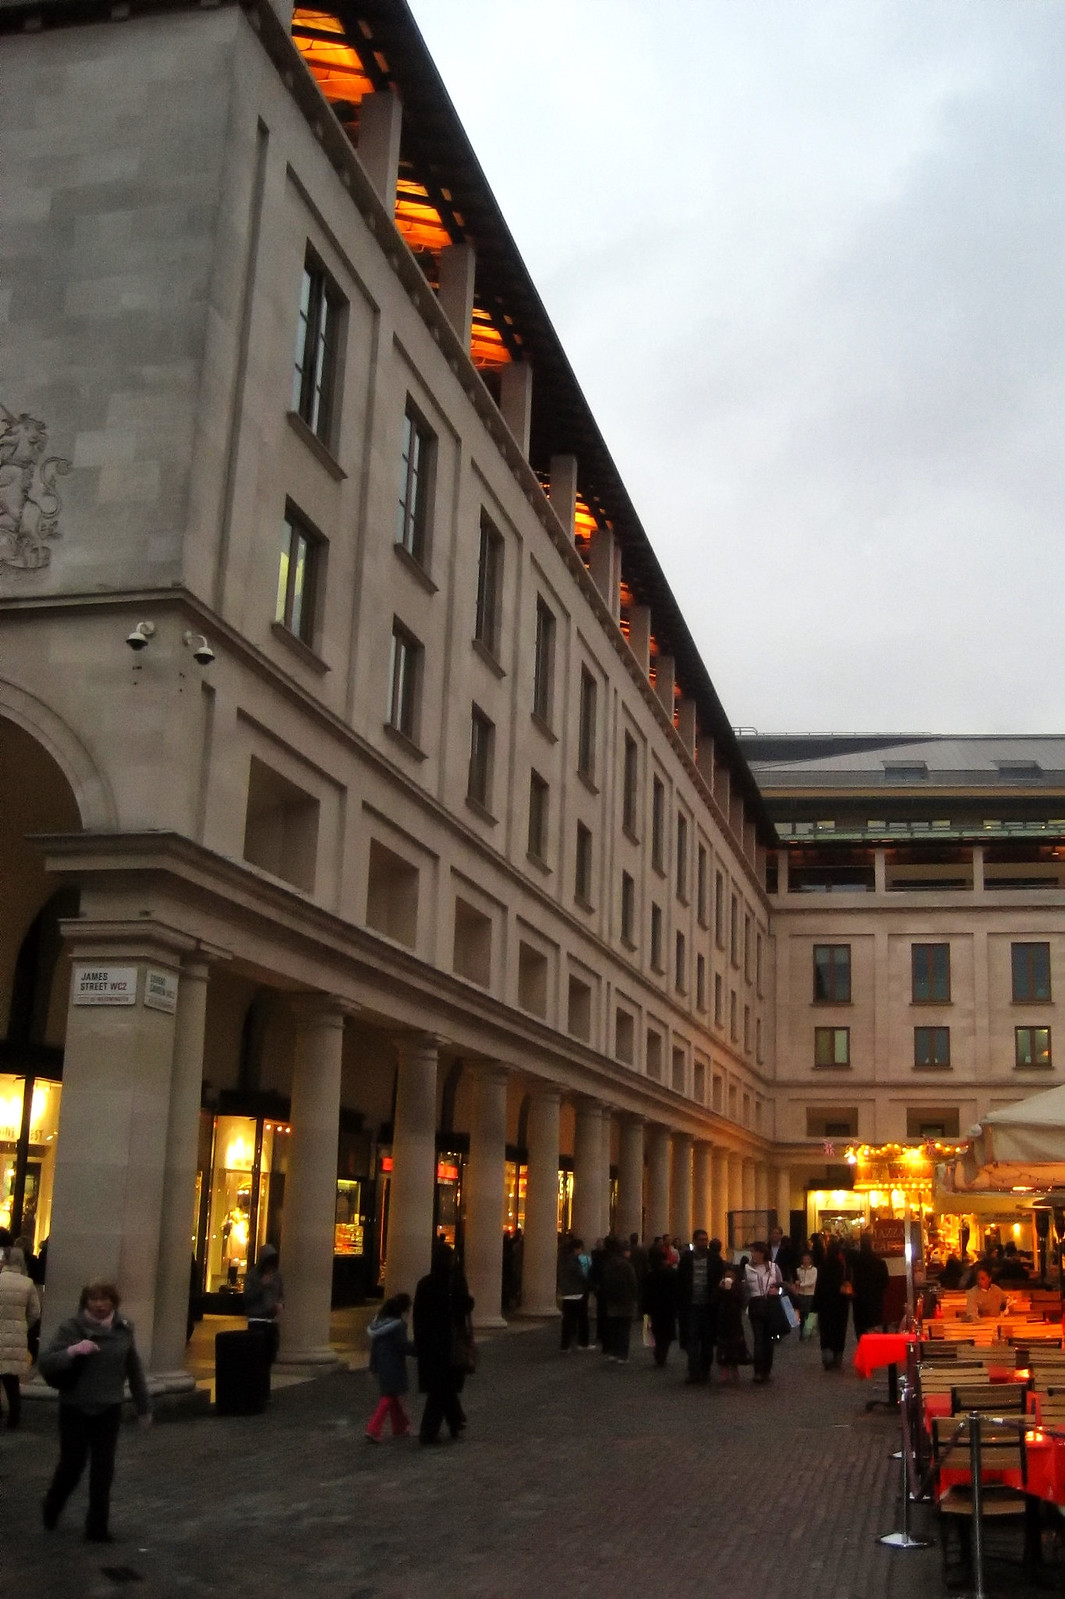 Covent Garden Piazza. Credit Wally Gobetz